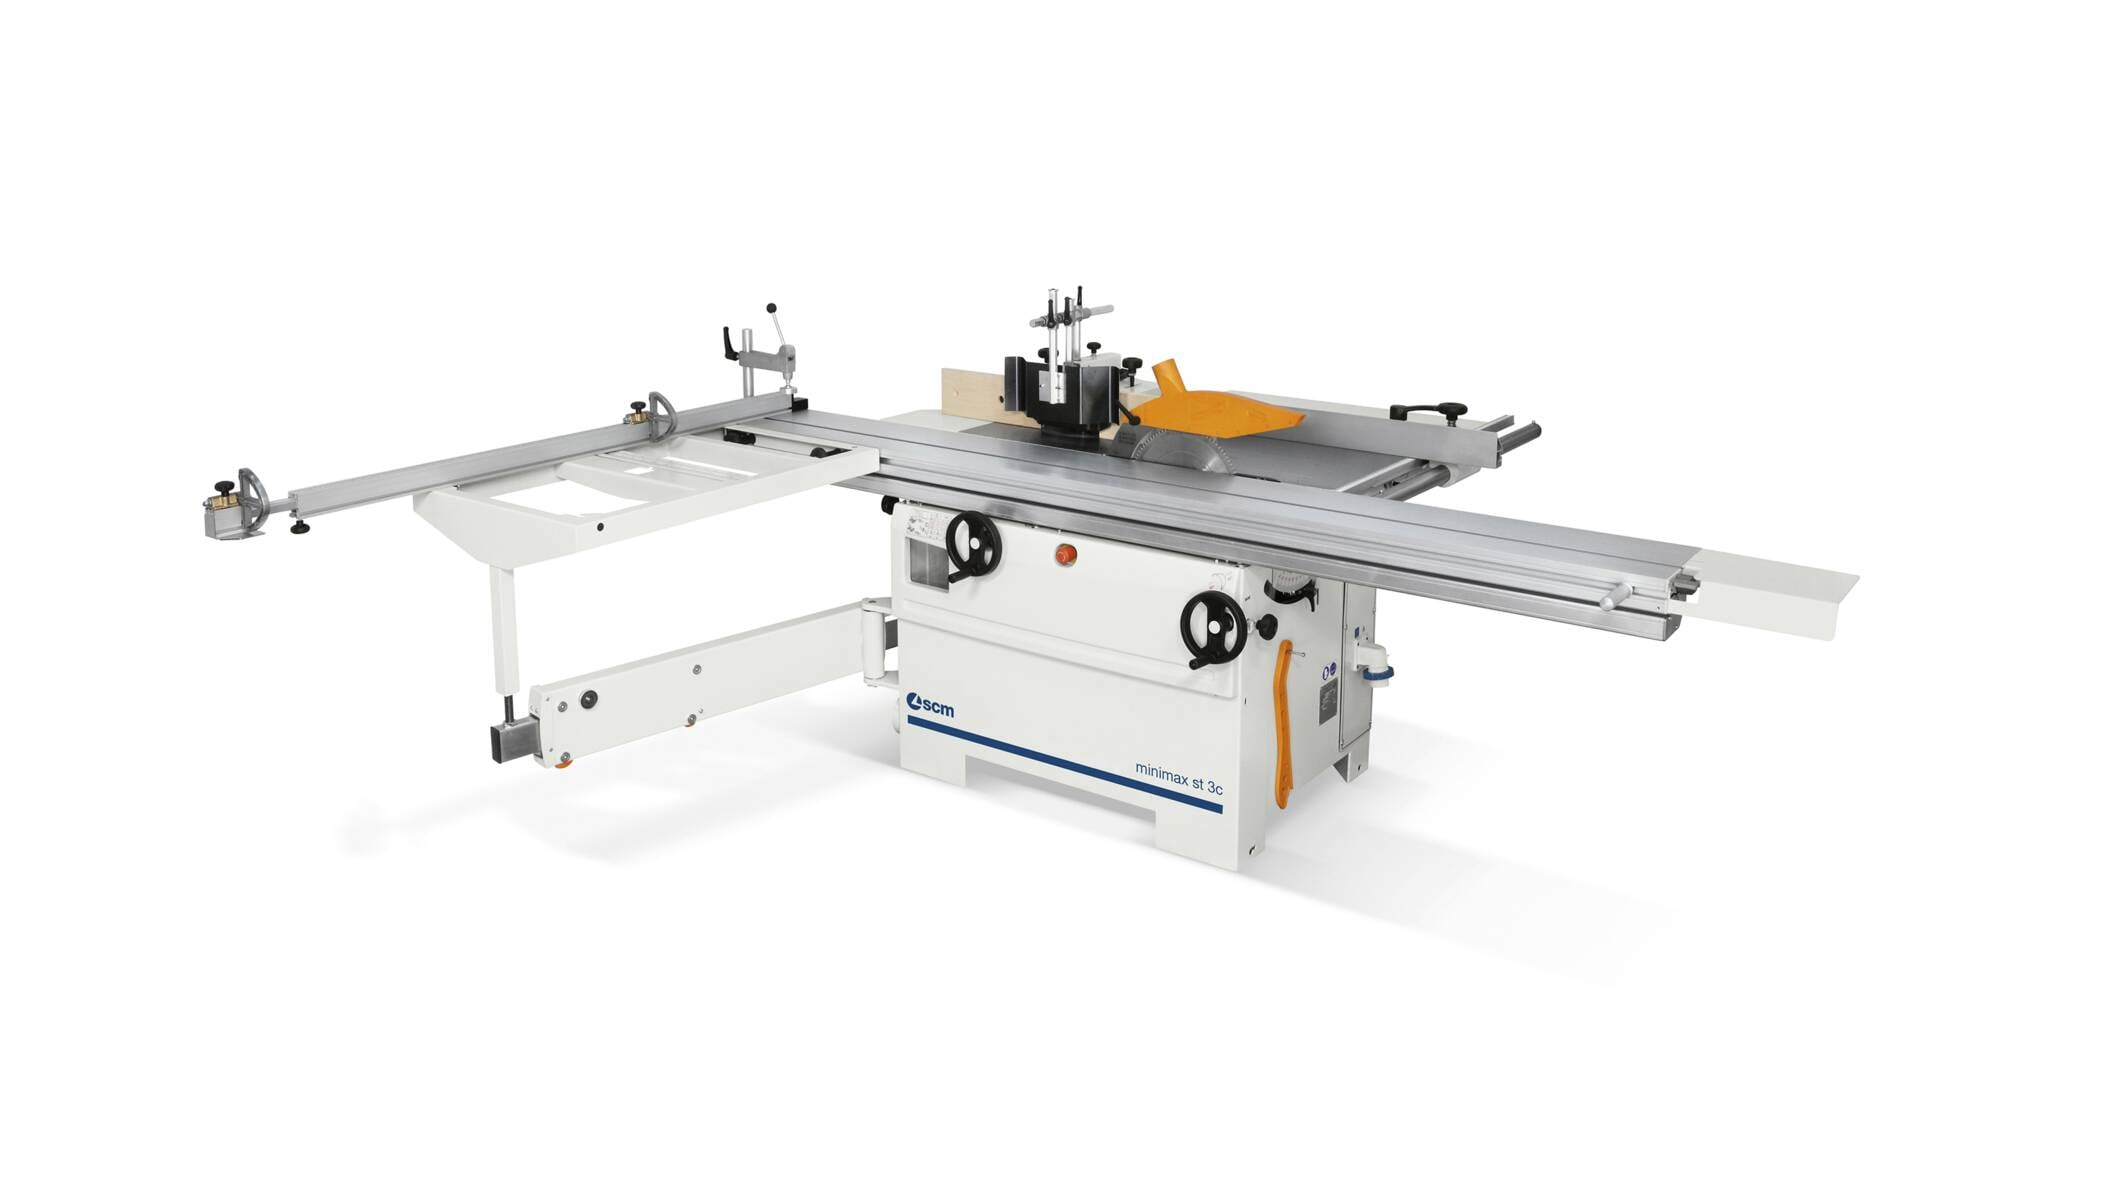 Joinery machines - Saw / shaper combination machines - minimax st 3c